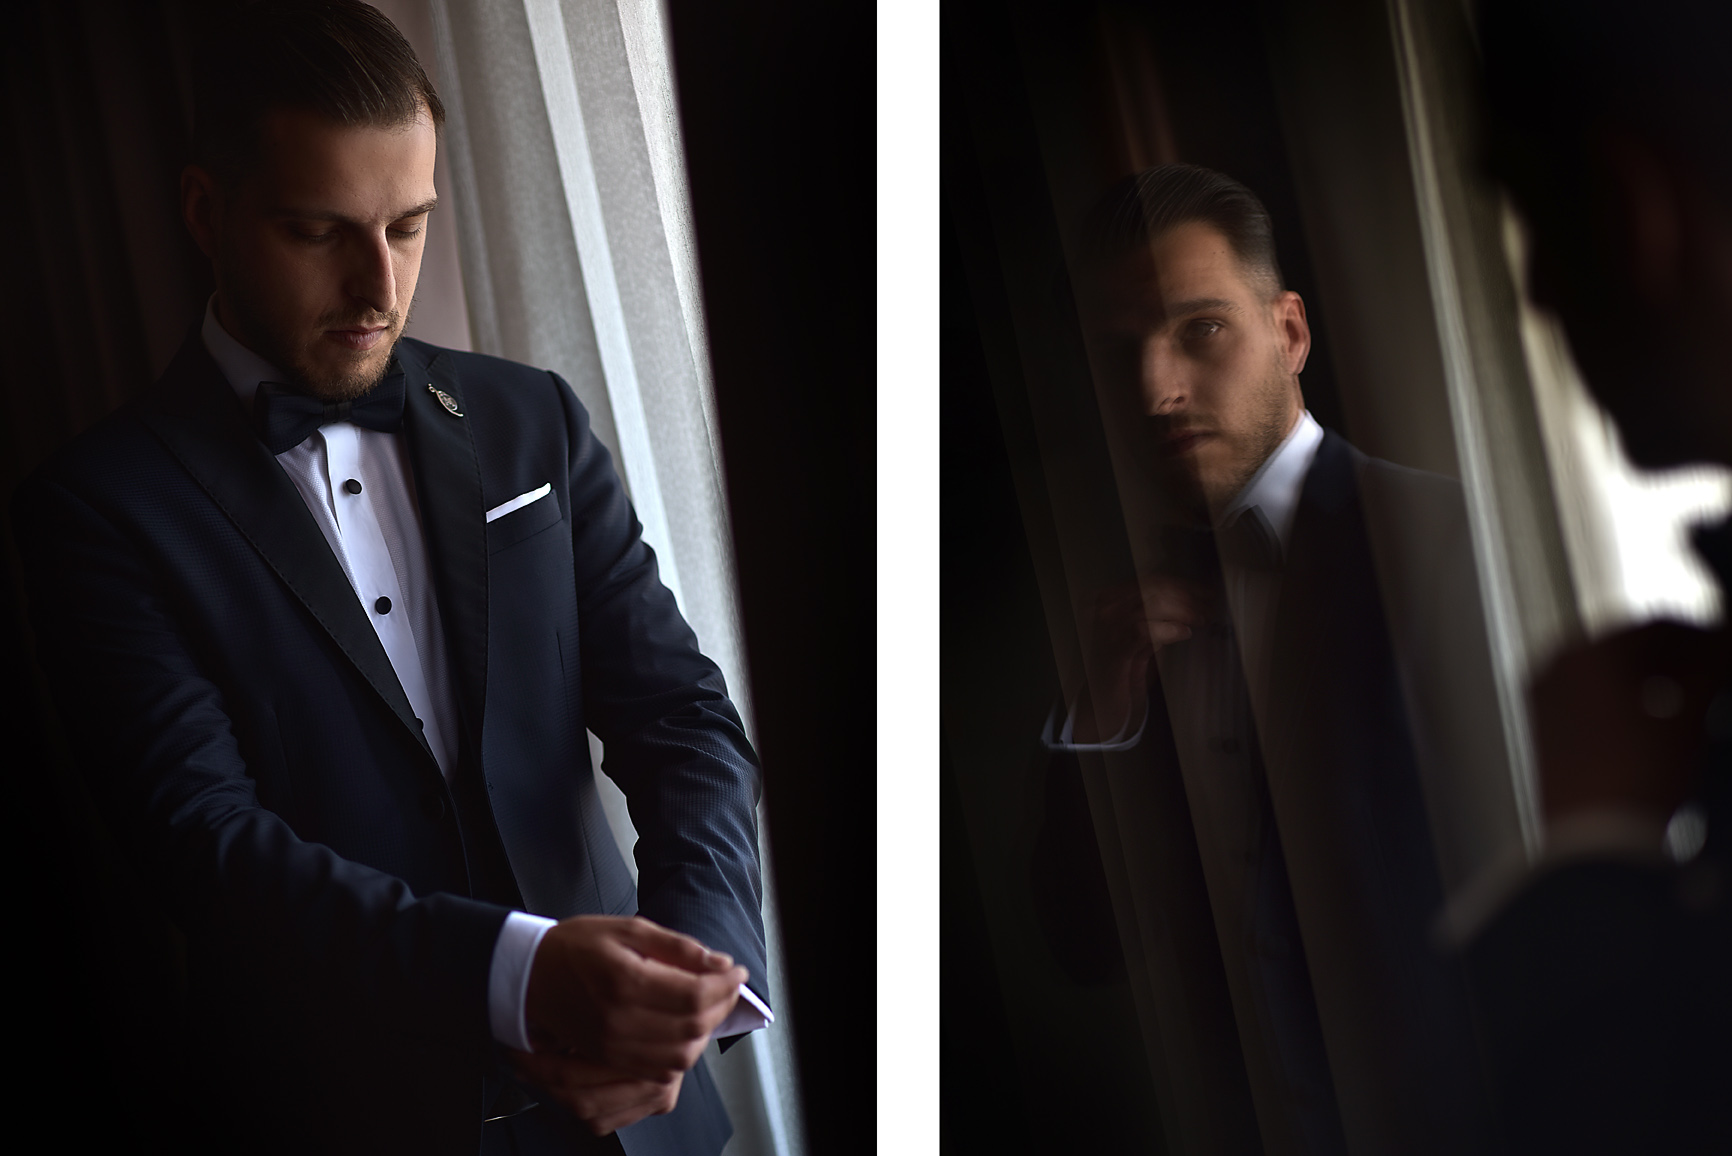 groom-preparation-limni-plastira-hotel-kazarma-wedding-karditsa-02